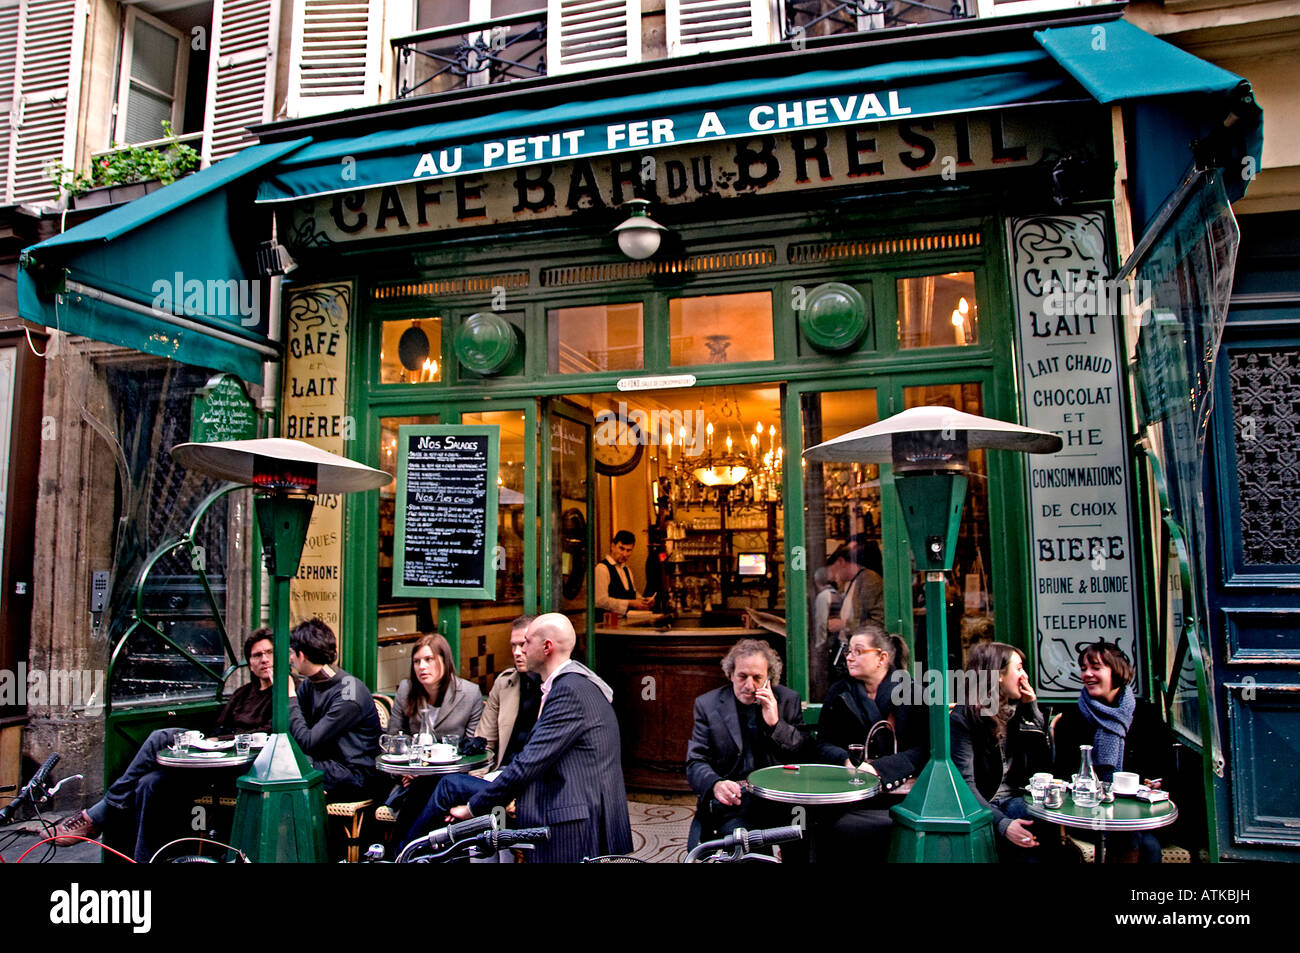 Cafe Petit Paris